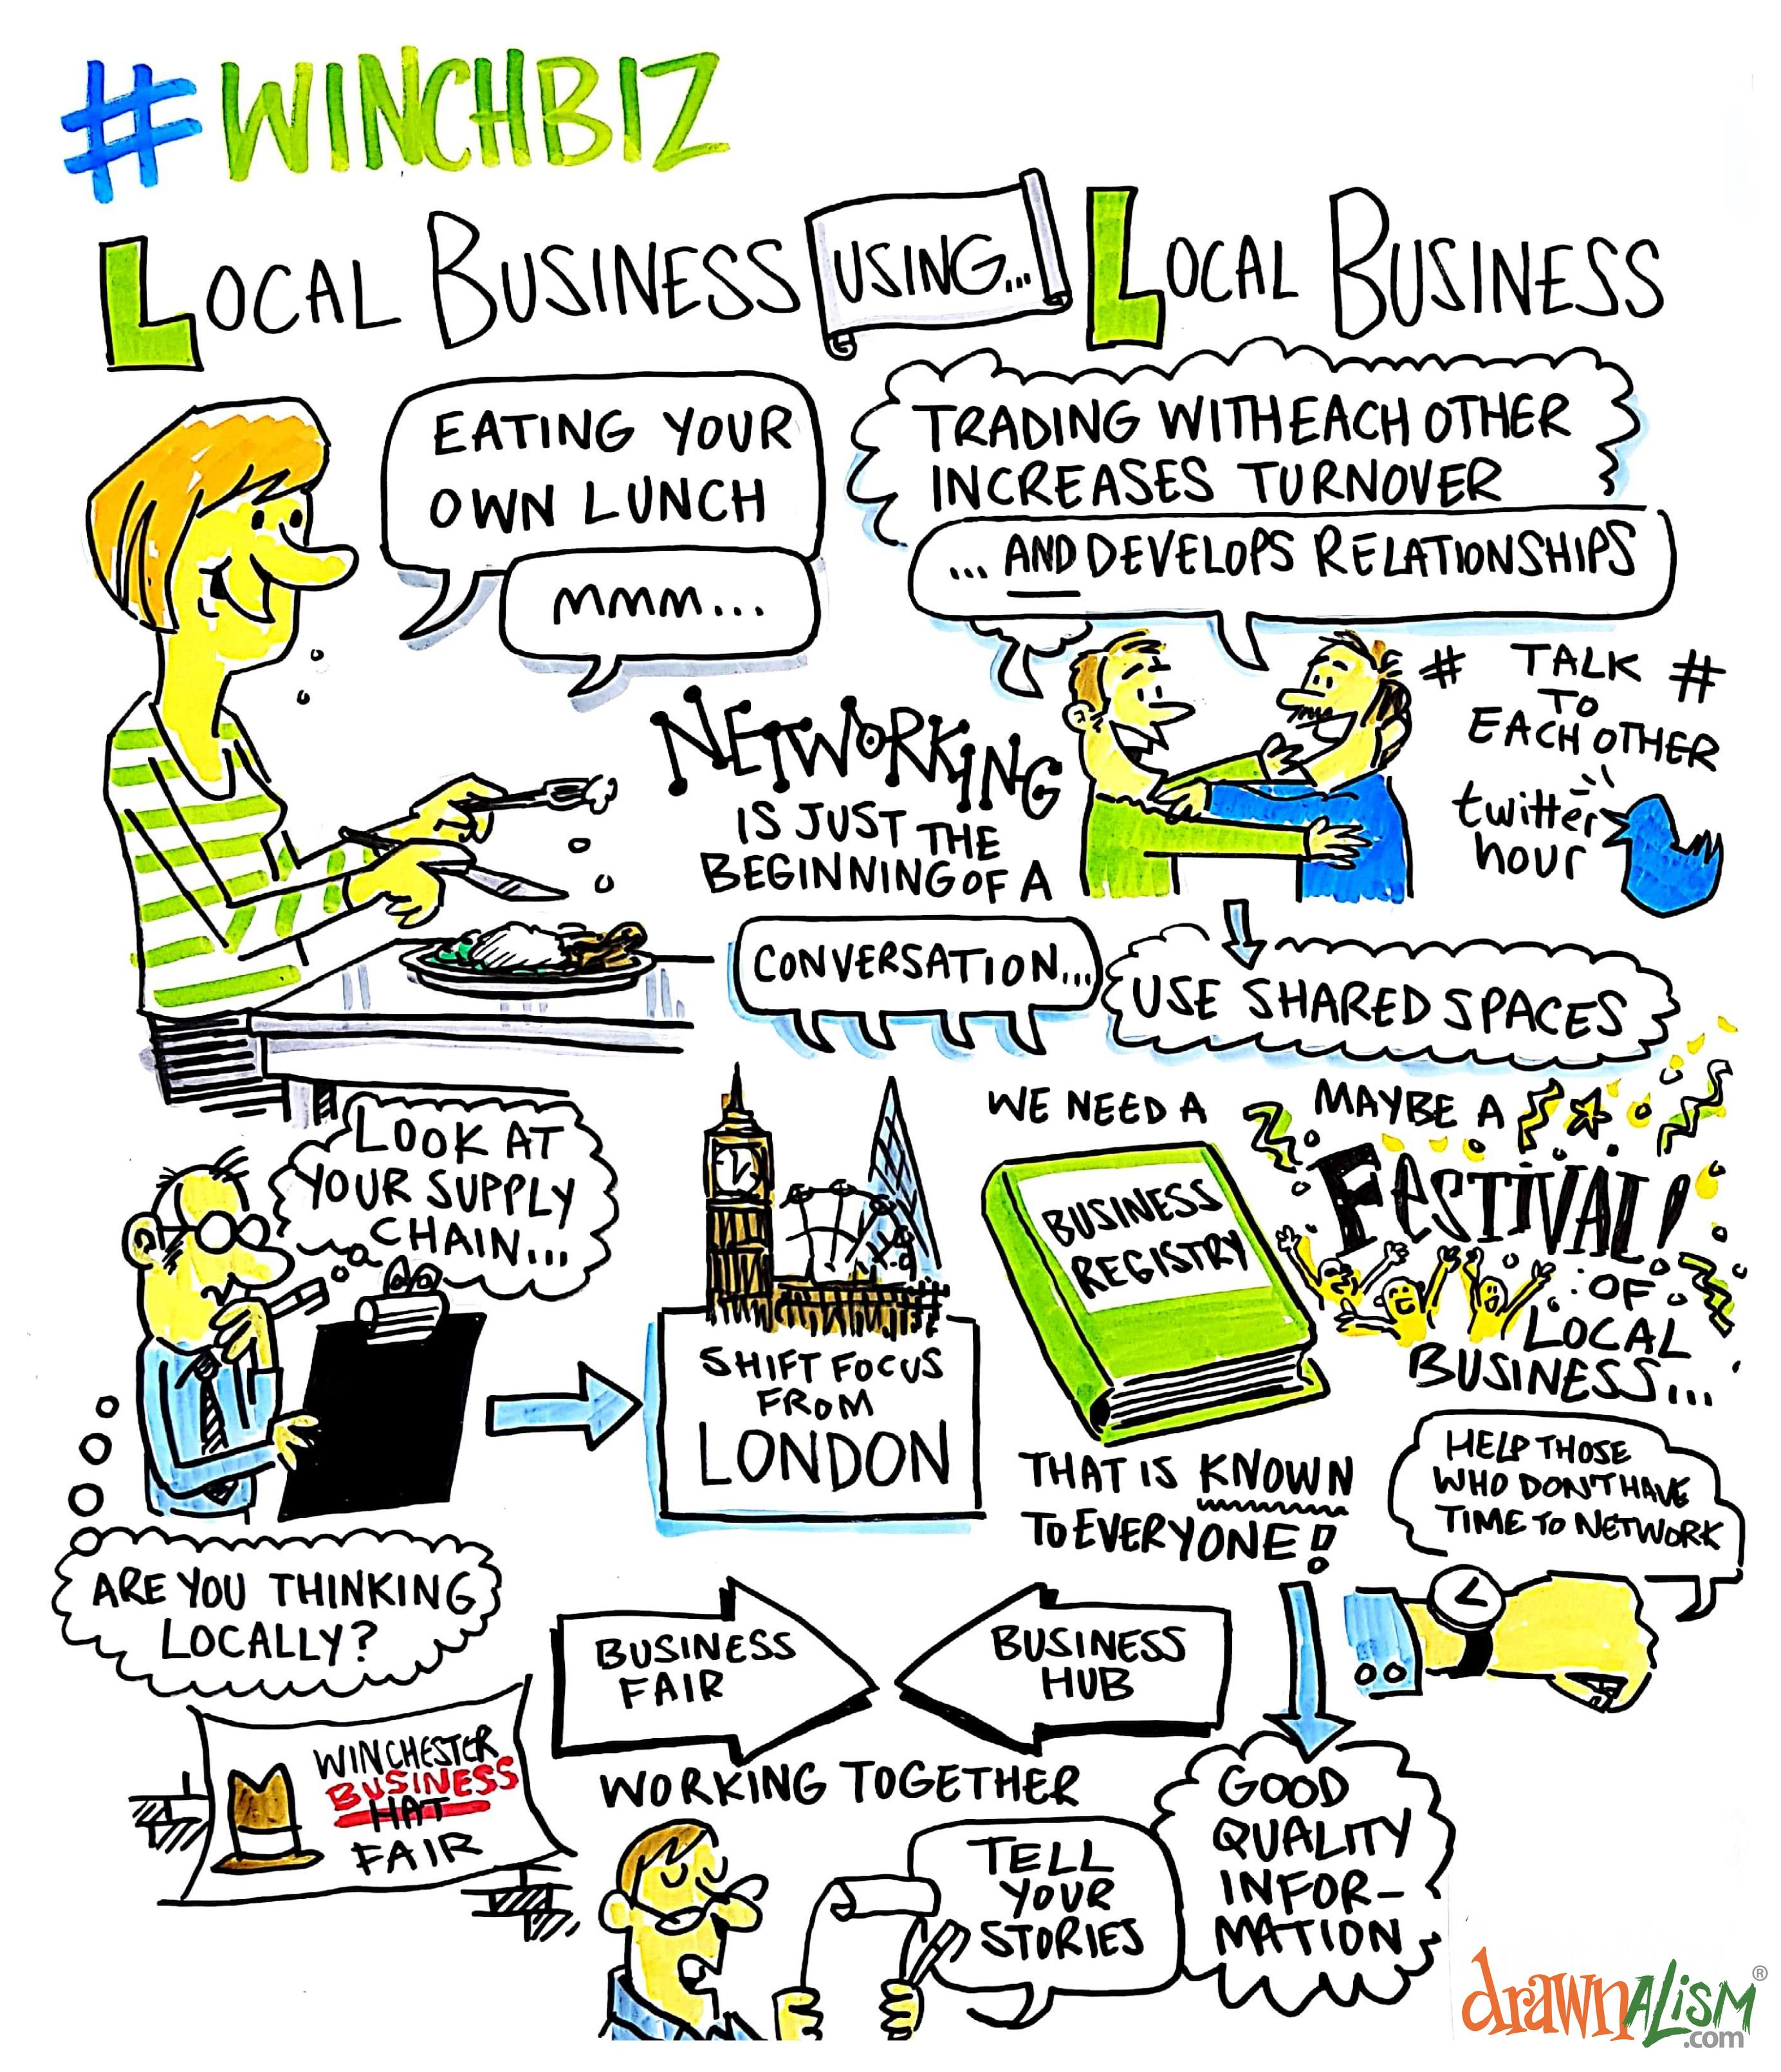 Winchester businesses: Eating our own lunch